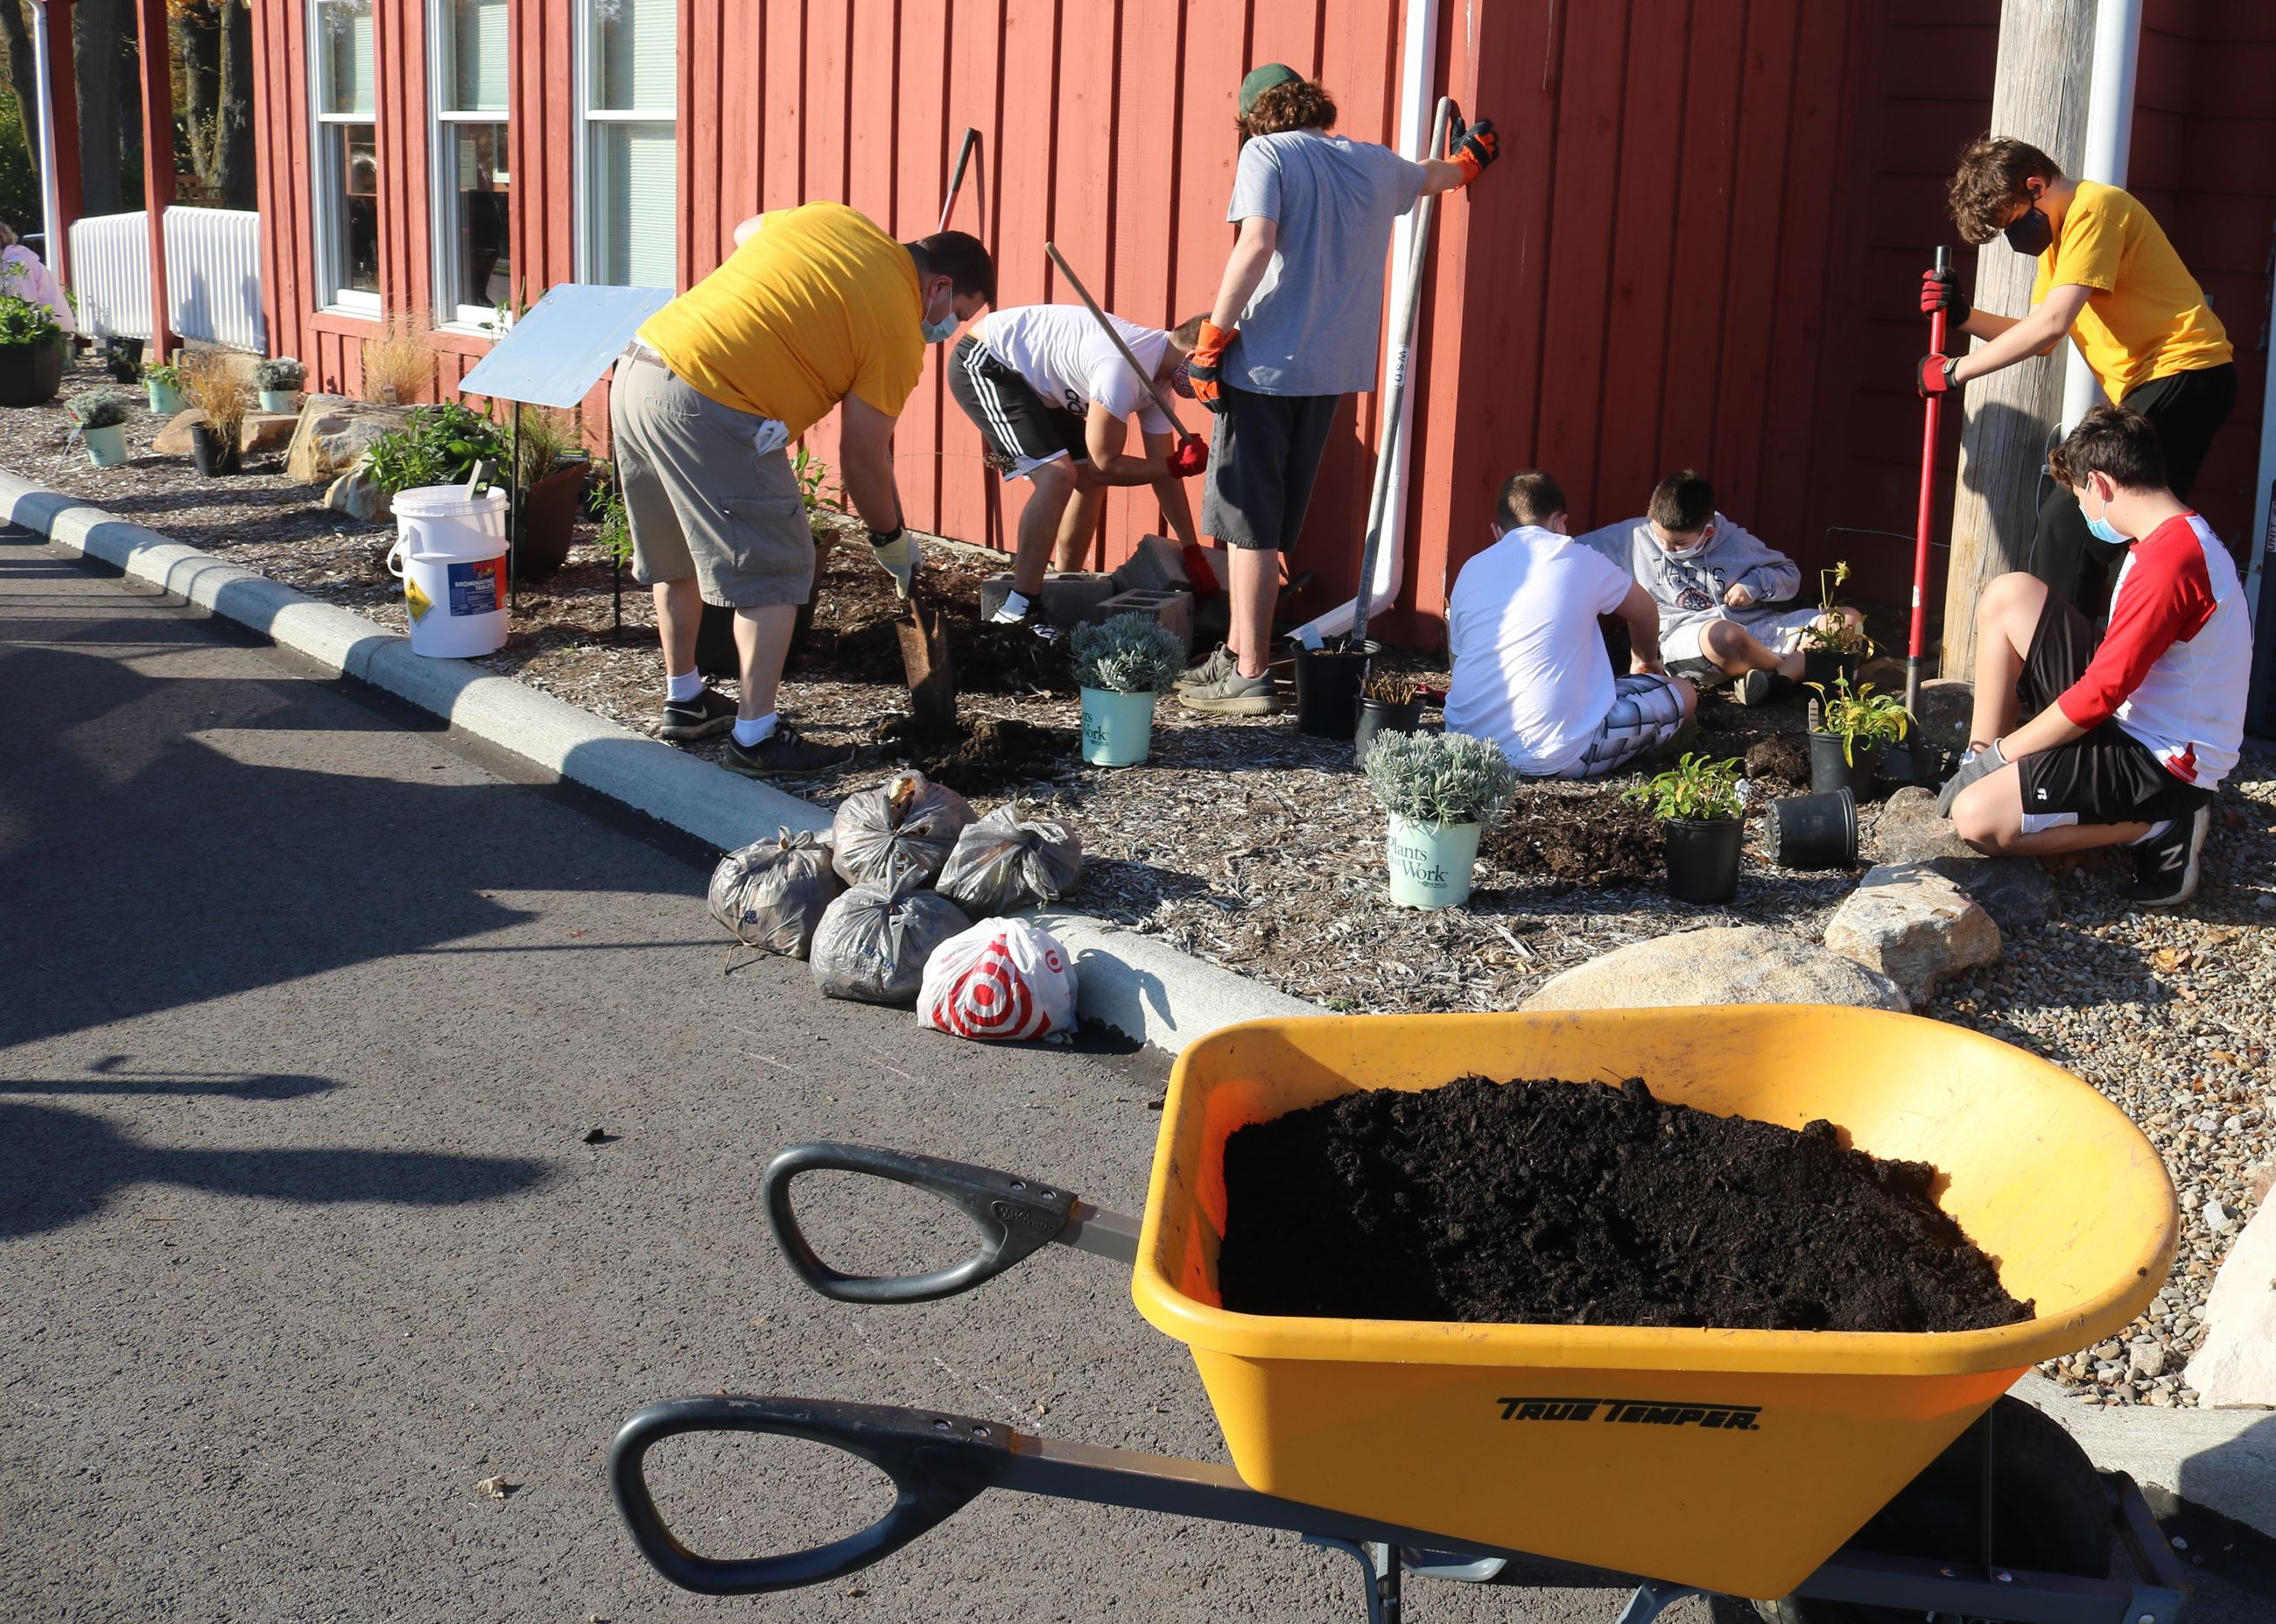 Volunteers work to plant pollinator plants in the Clague Playhouse Pollinator Garden.